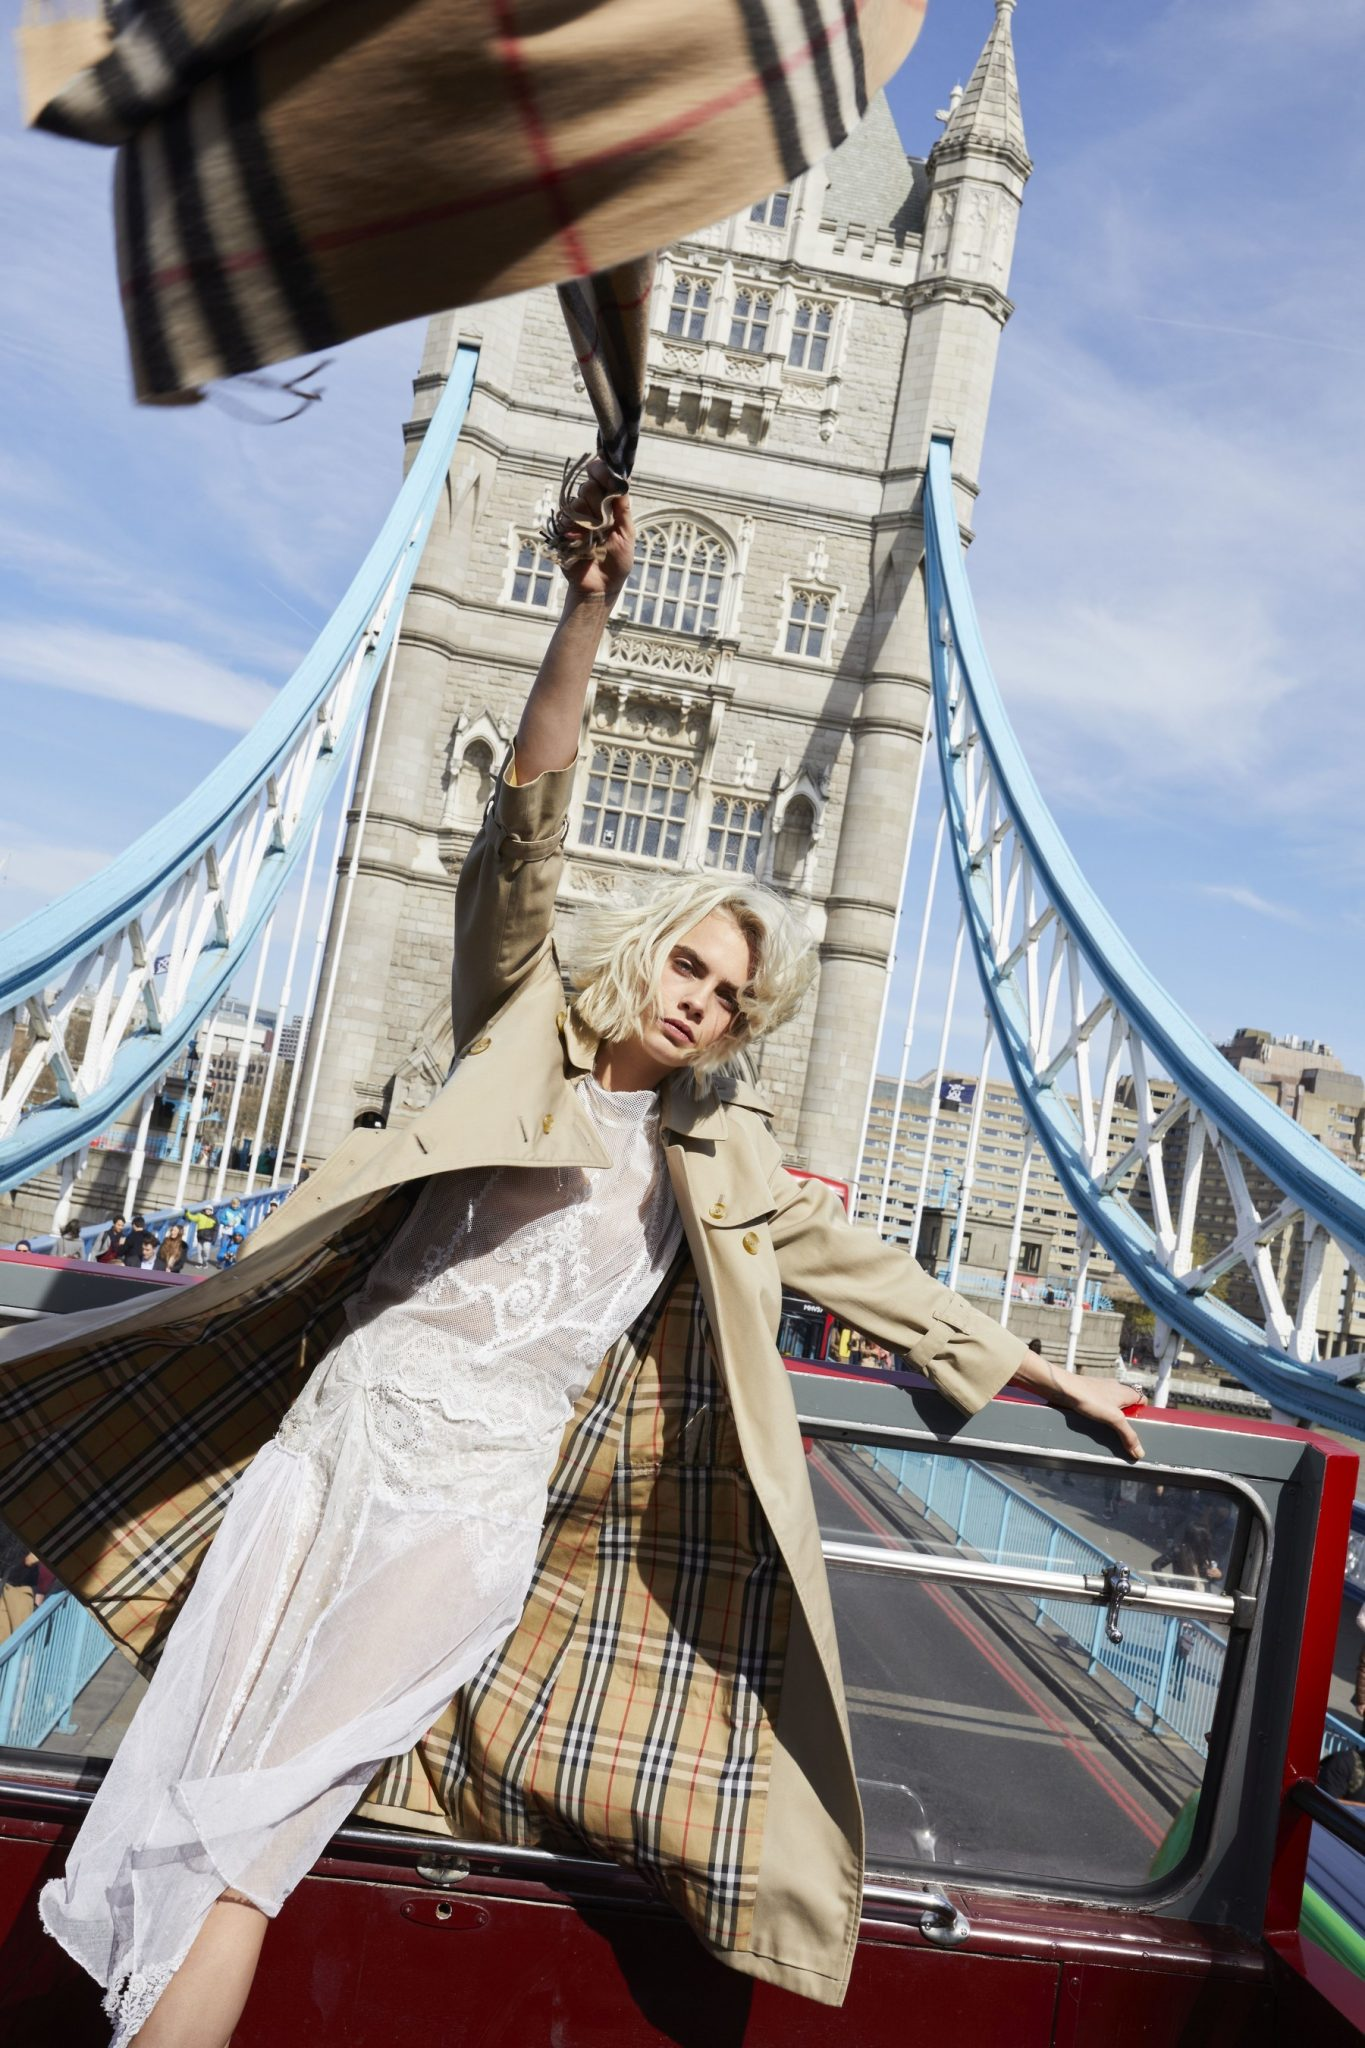 Burberry Introduces 'Her' Starring Cara Delevingne